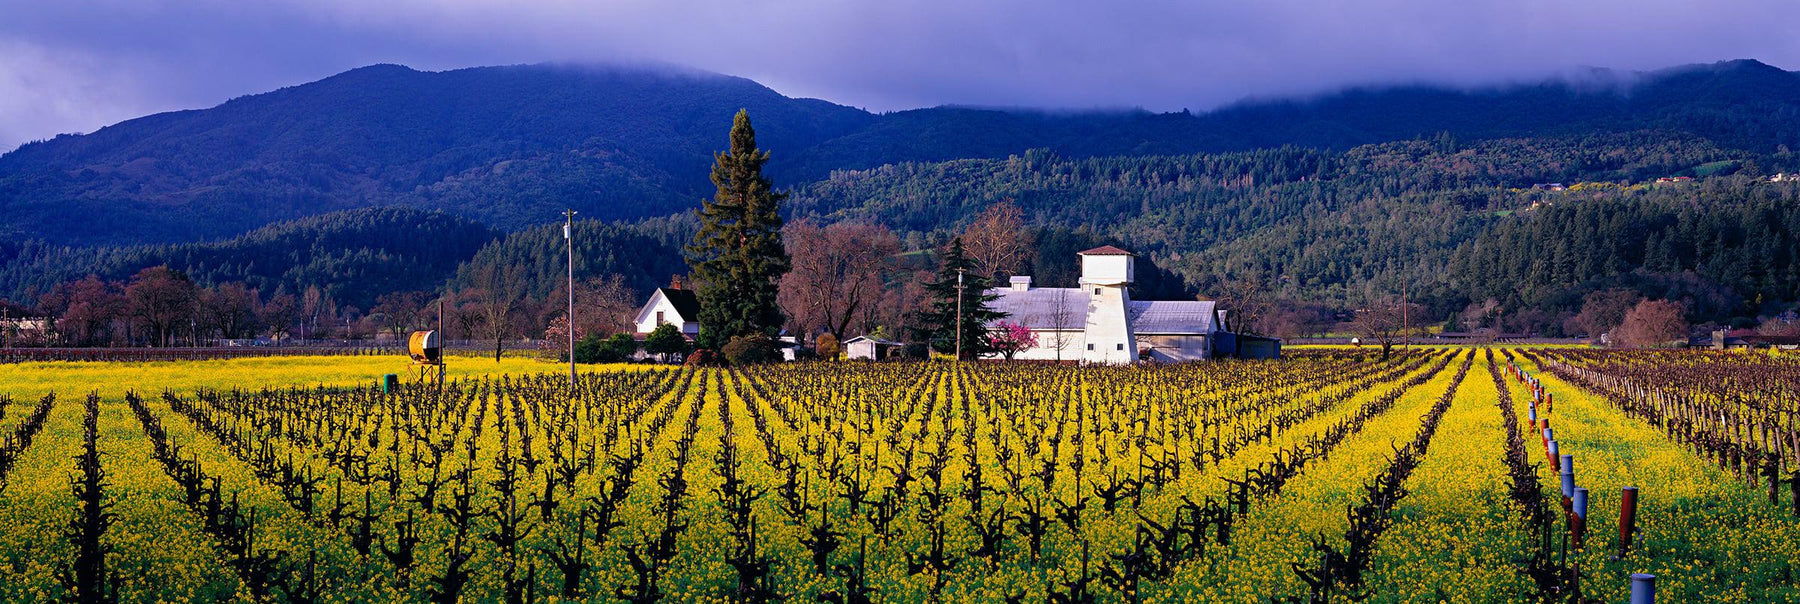 Vineyard with rows of grape plants in Napa California surrounded by mustard flowers in Spring